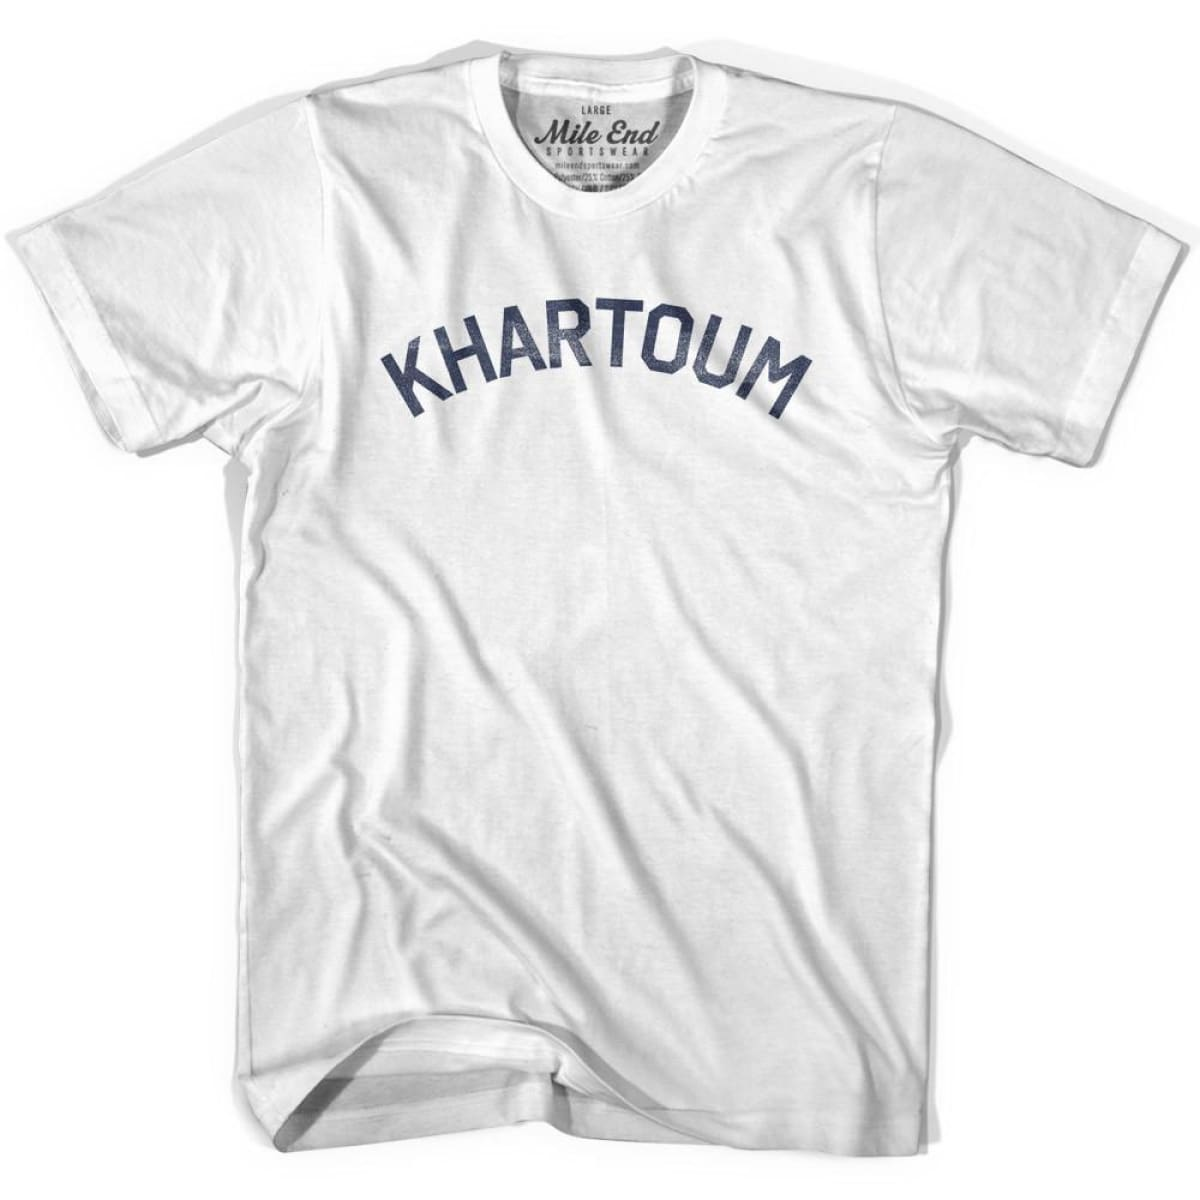 Khartoum City Vintage T-shirt - Grey Heather / Youth X-Small - Mile End City